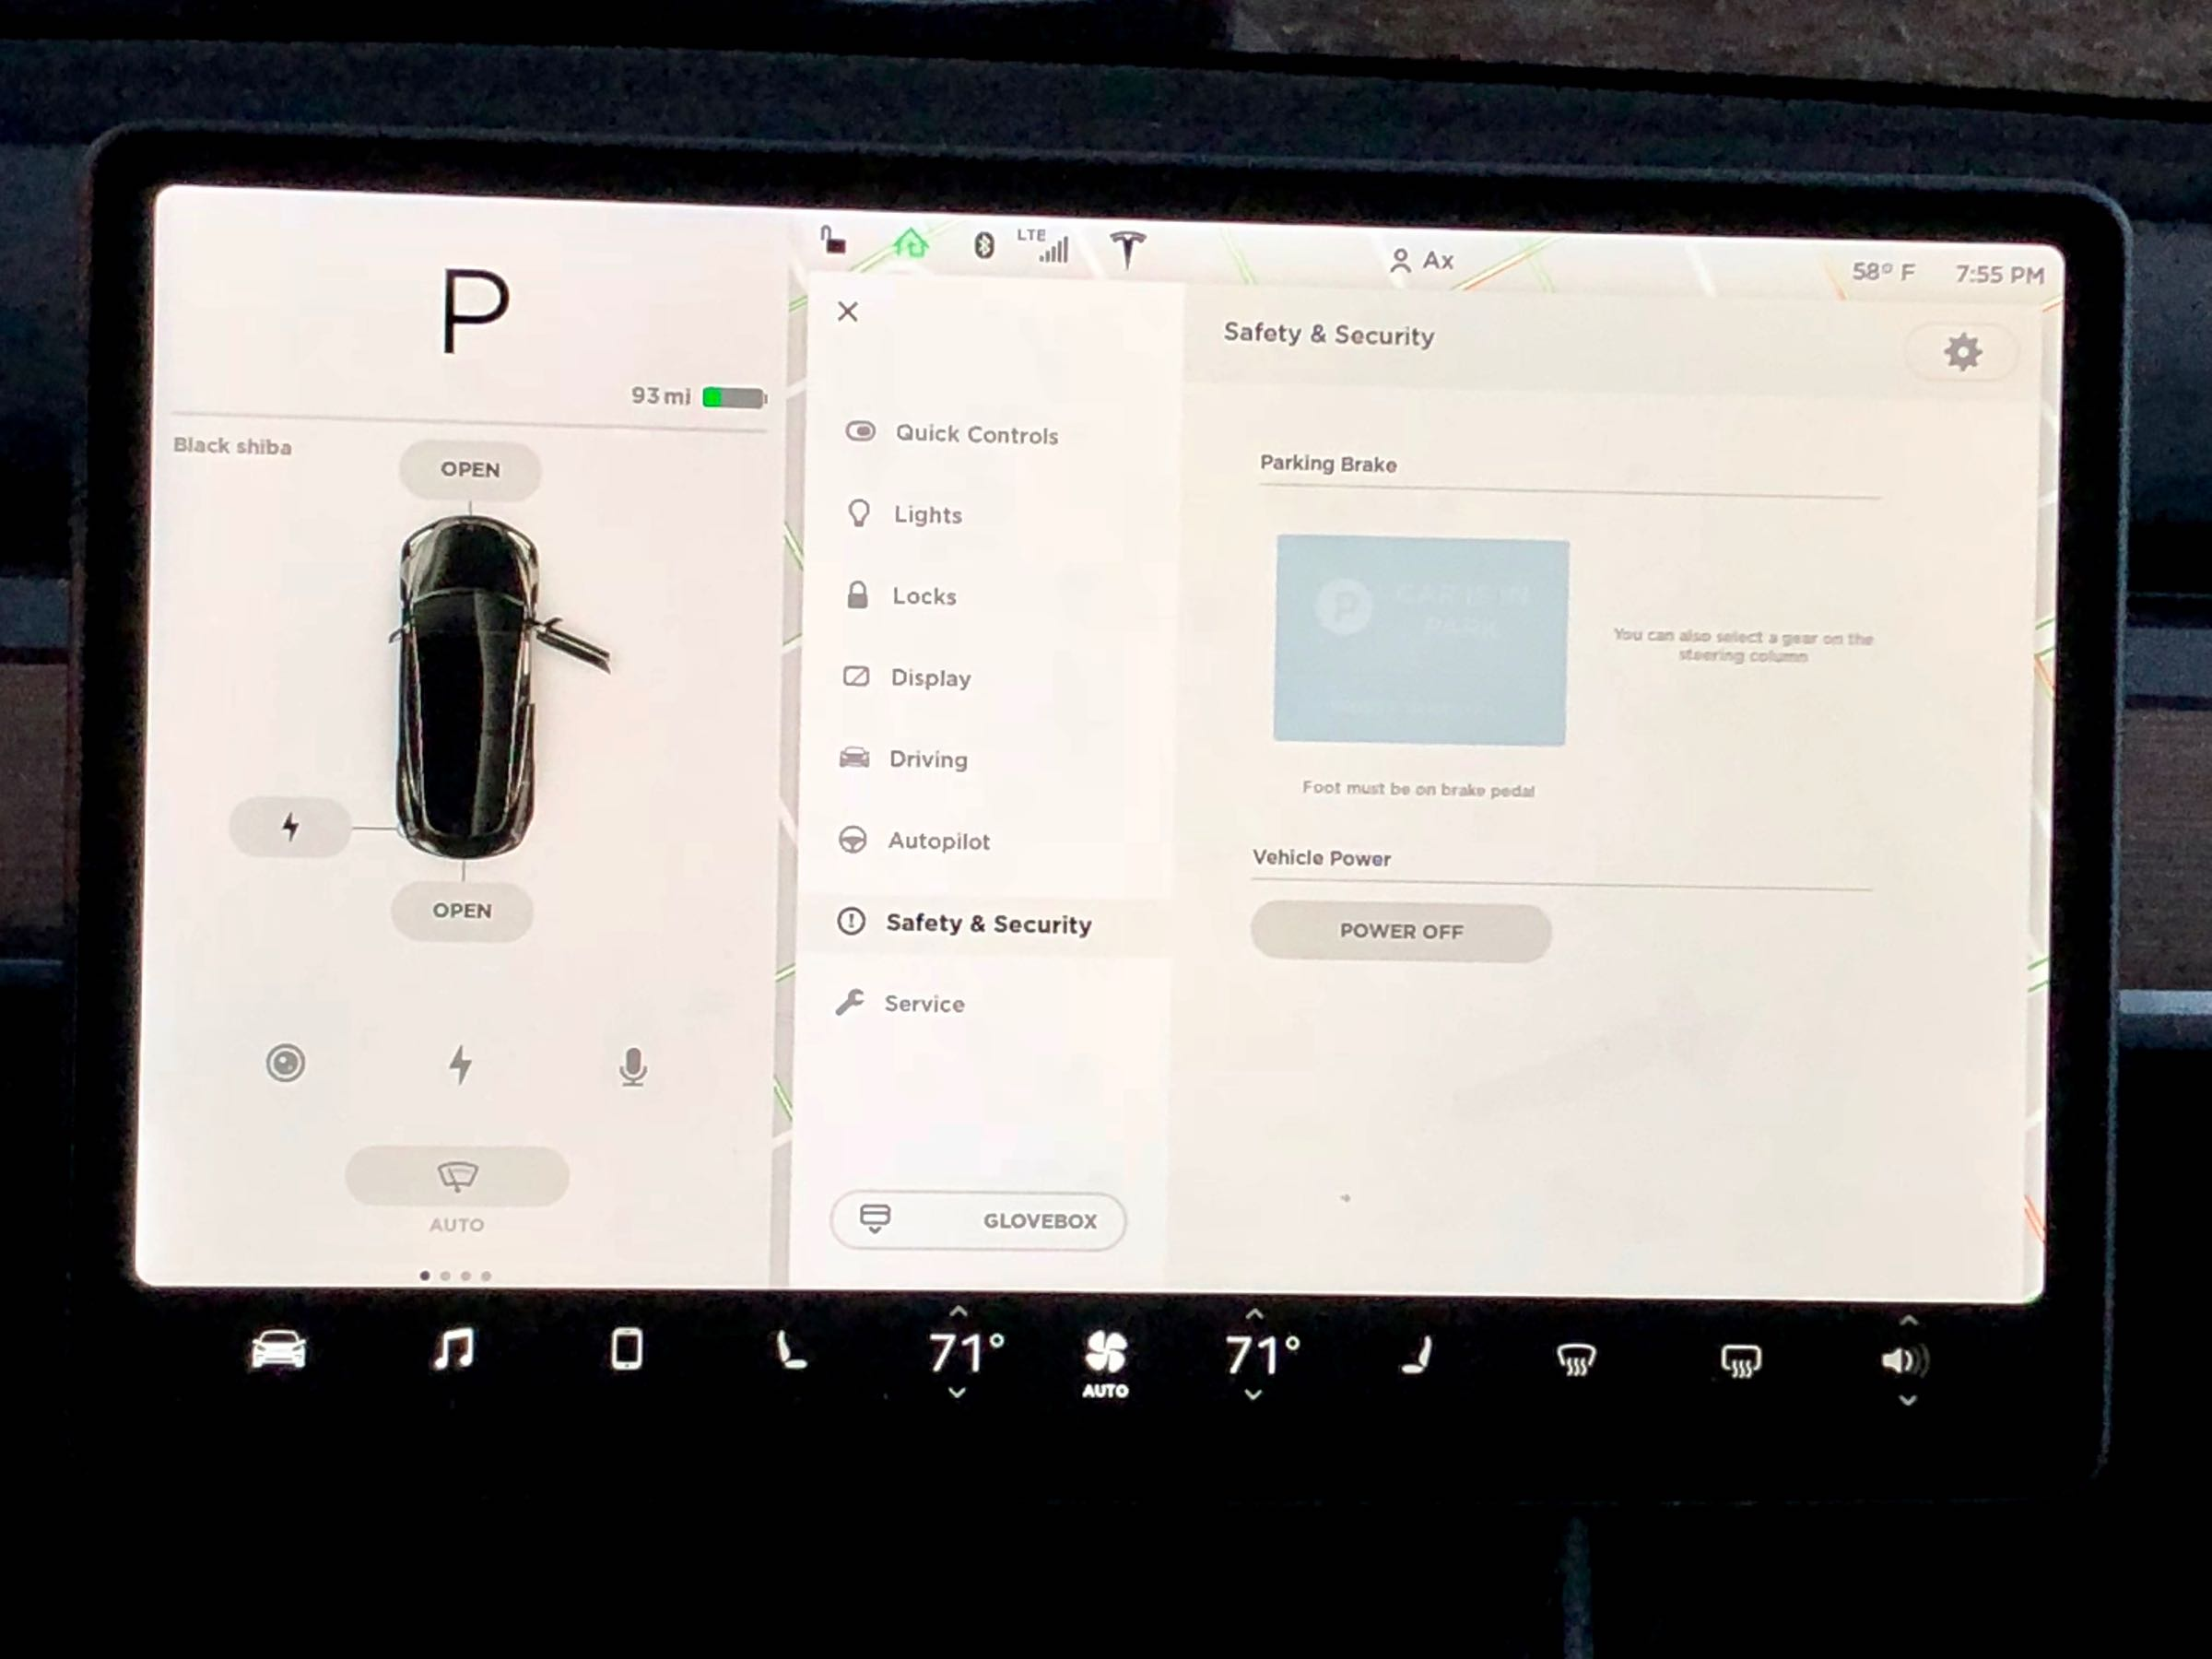 model 3 infotainment screen